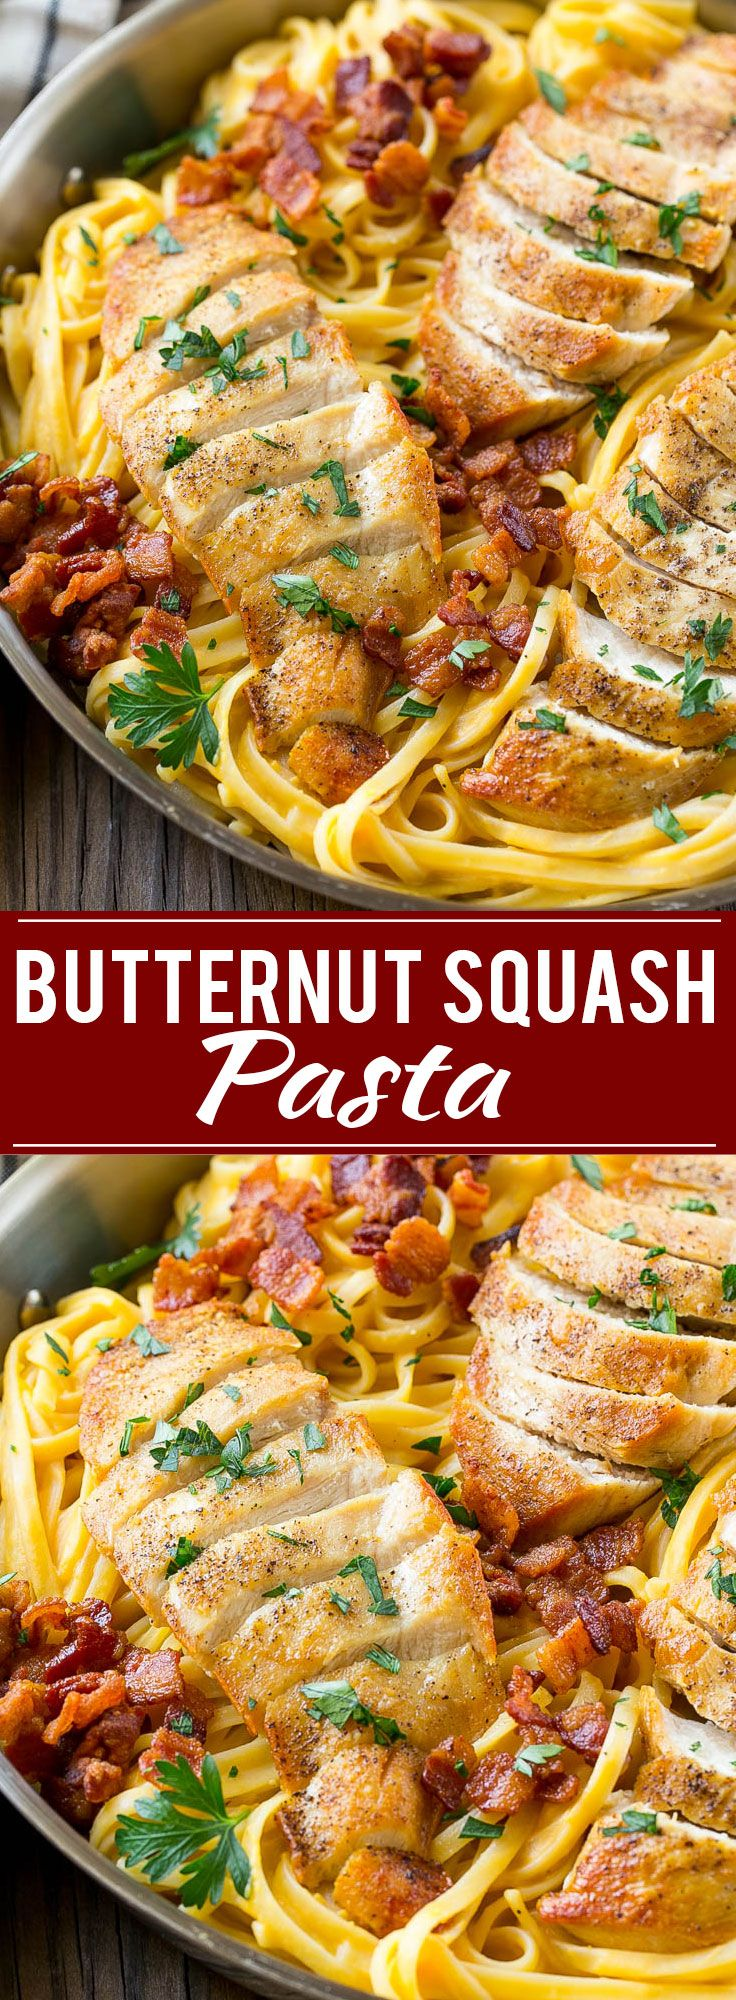 This recipe for butternut squash pasta is linguine in a creamy butternut squash sauce, topped with chicken, bacon and herbs. An easy and delicious dinner that's perfect for fall! #FamilyPastaTime #ad                                                                                                                                                                                 More